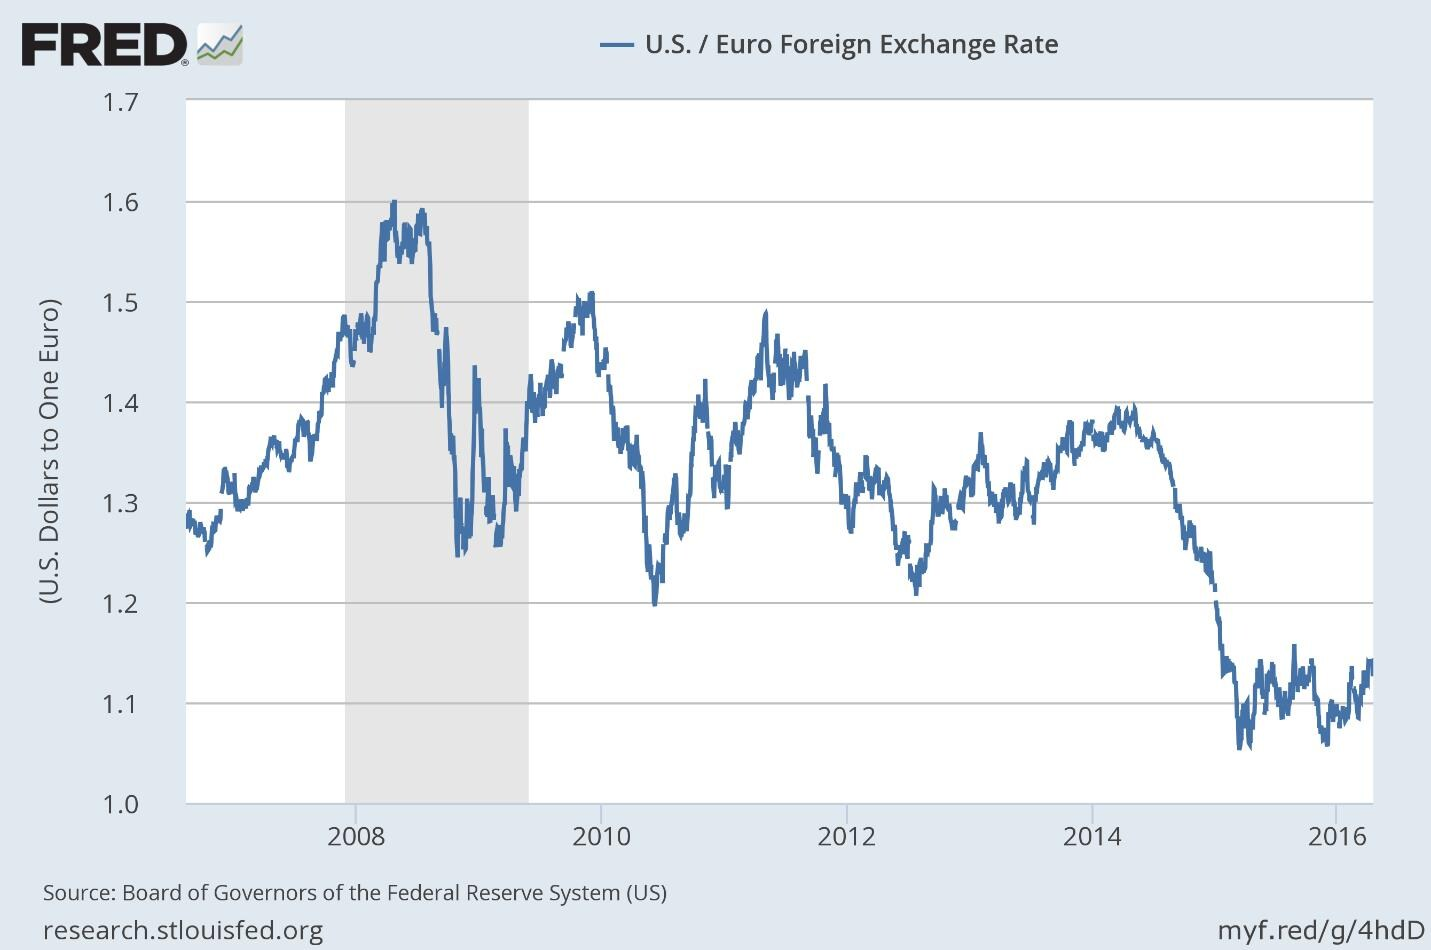 Graph showing the fluctuations in U.S. foreign exchange rates v/s the Euro from 2008 to 2016.